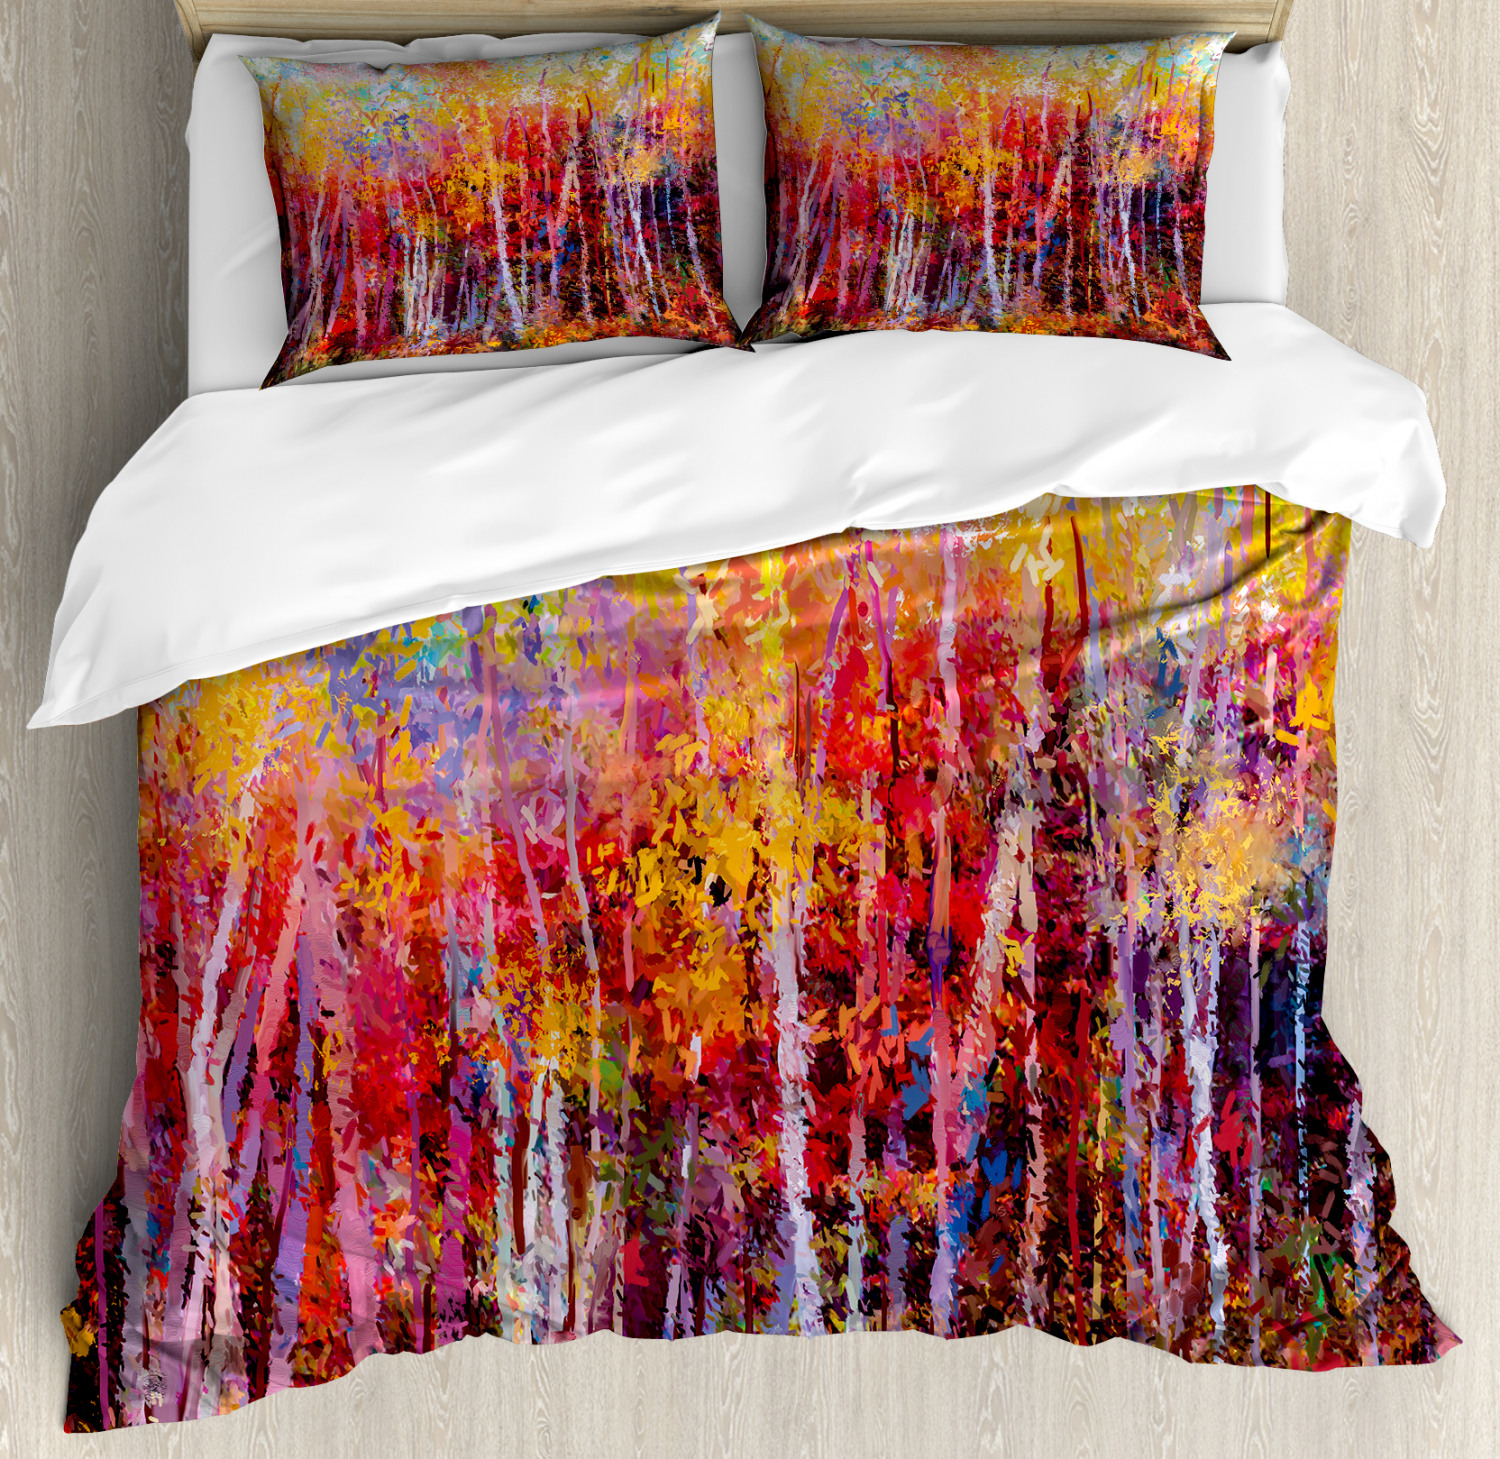 Nature Duvet Cover Set with Pillow Shams Autumn Forest Painting Print